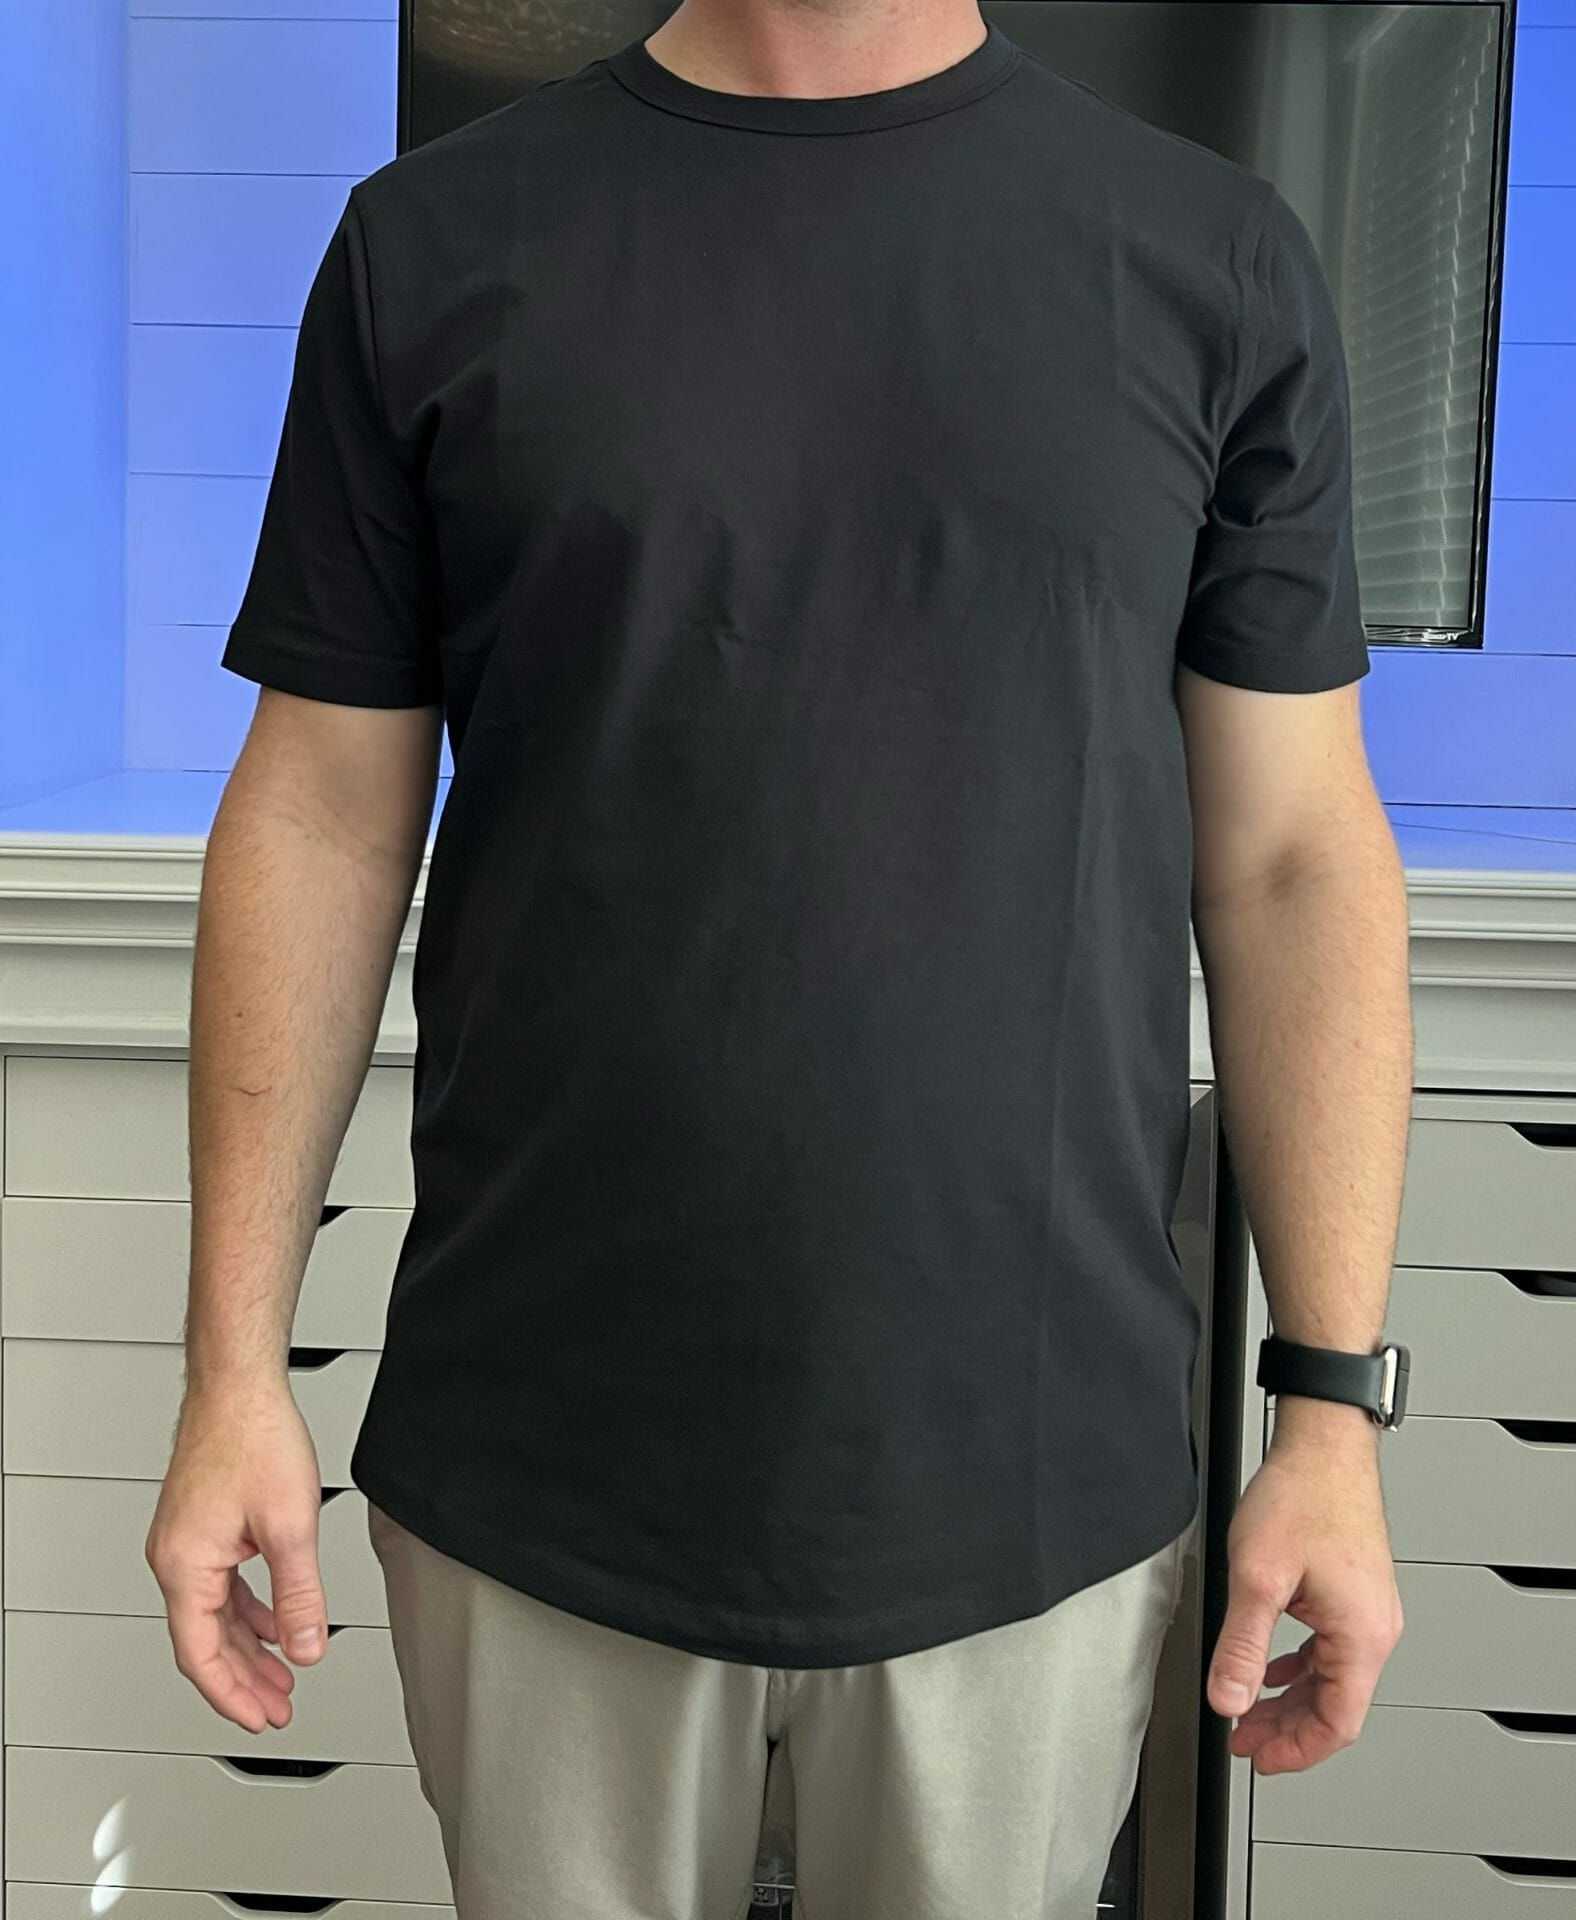 Perfect Tee Review - Can Perfect Jean NYC do it again? 9